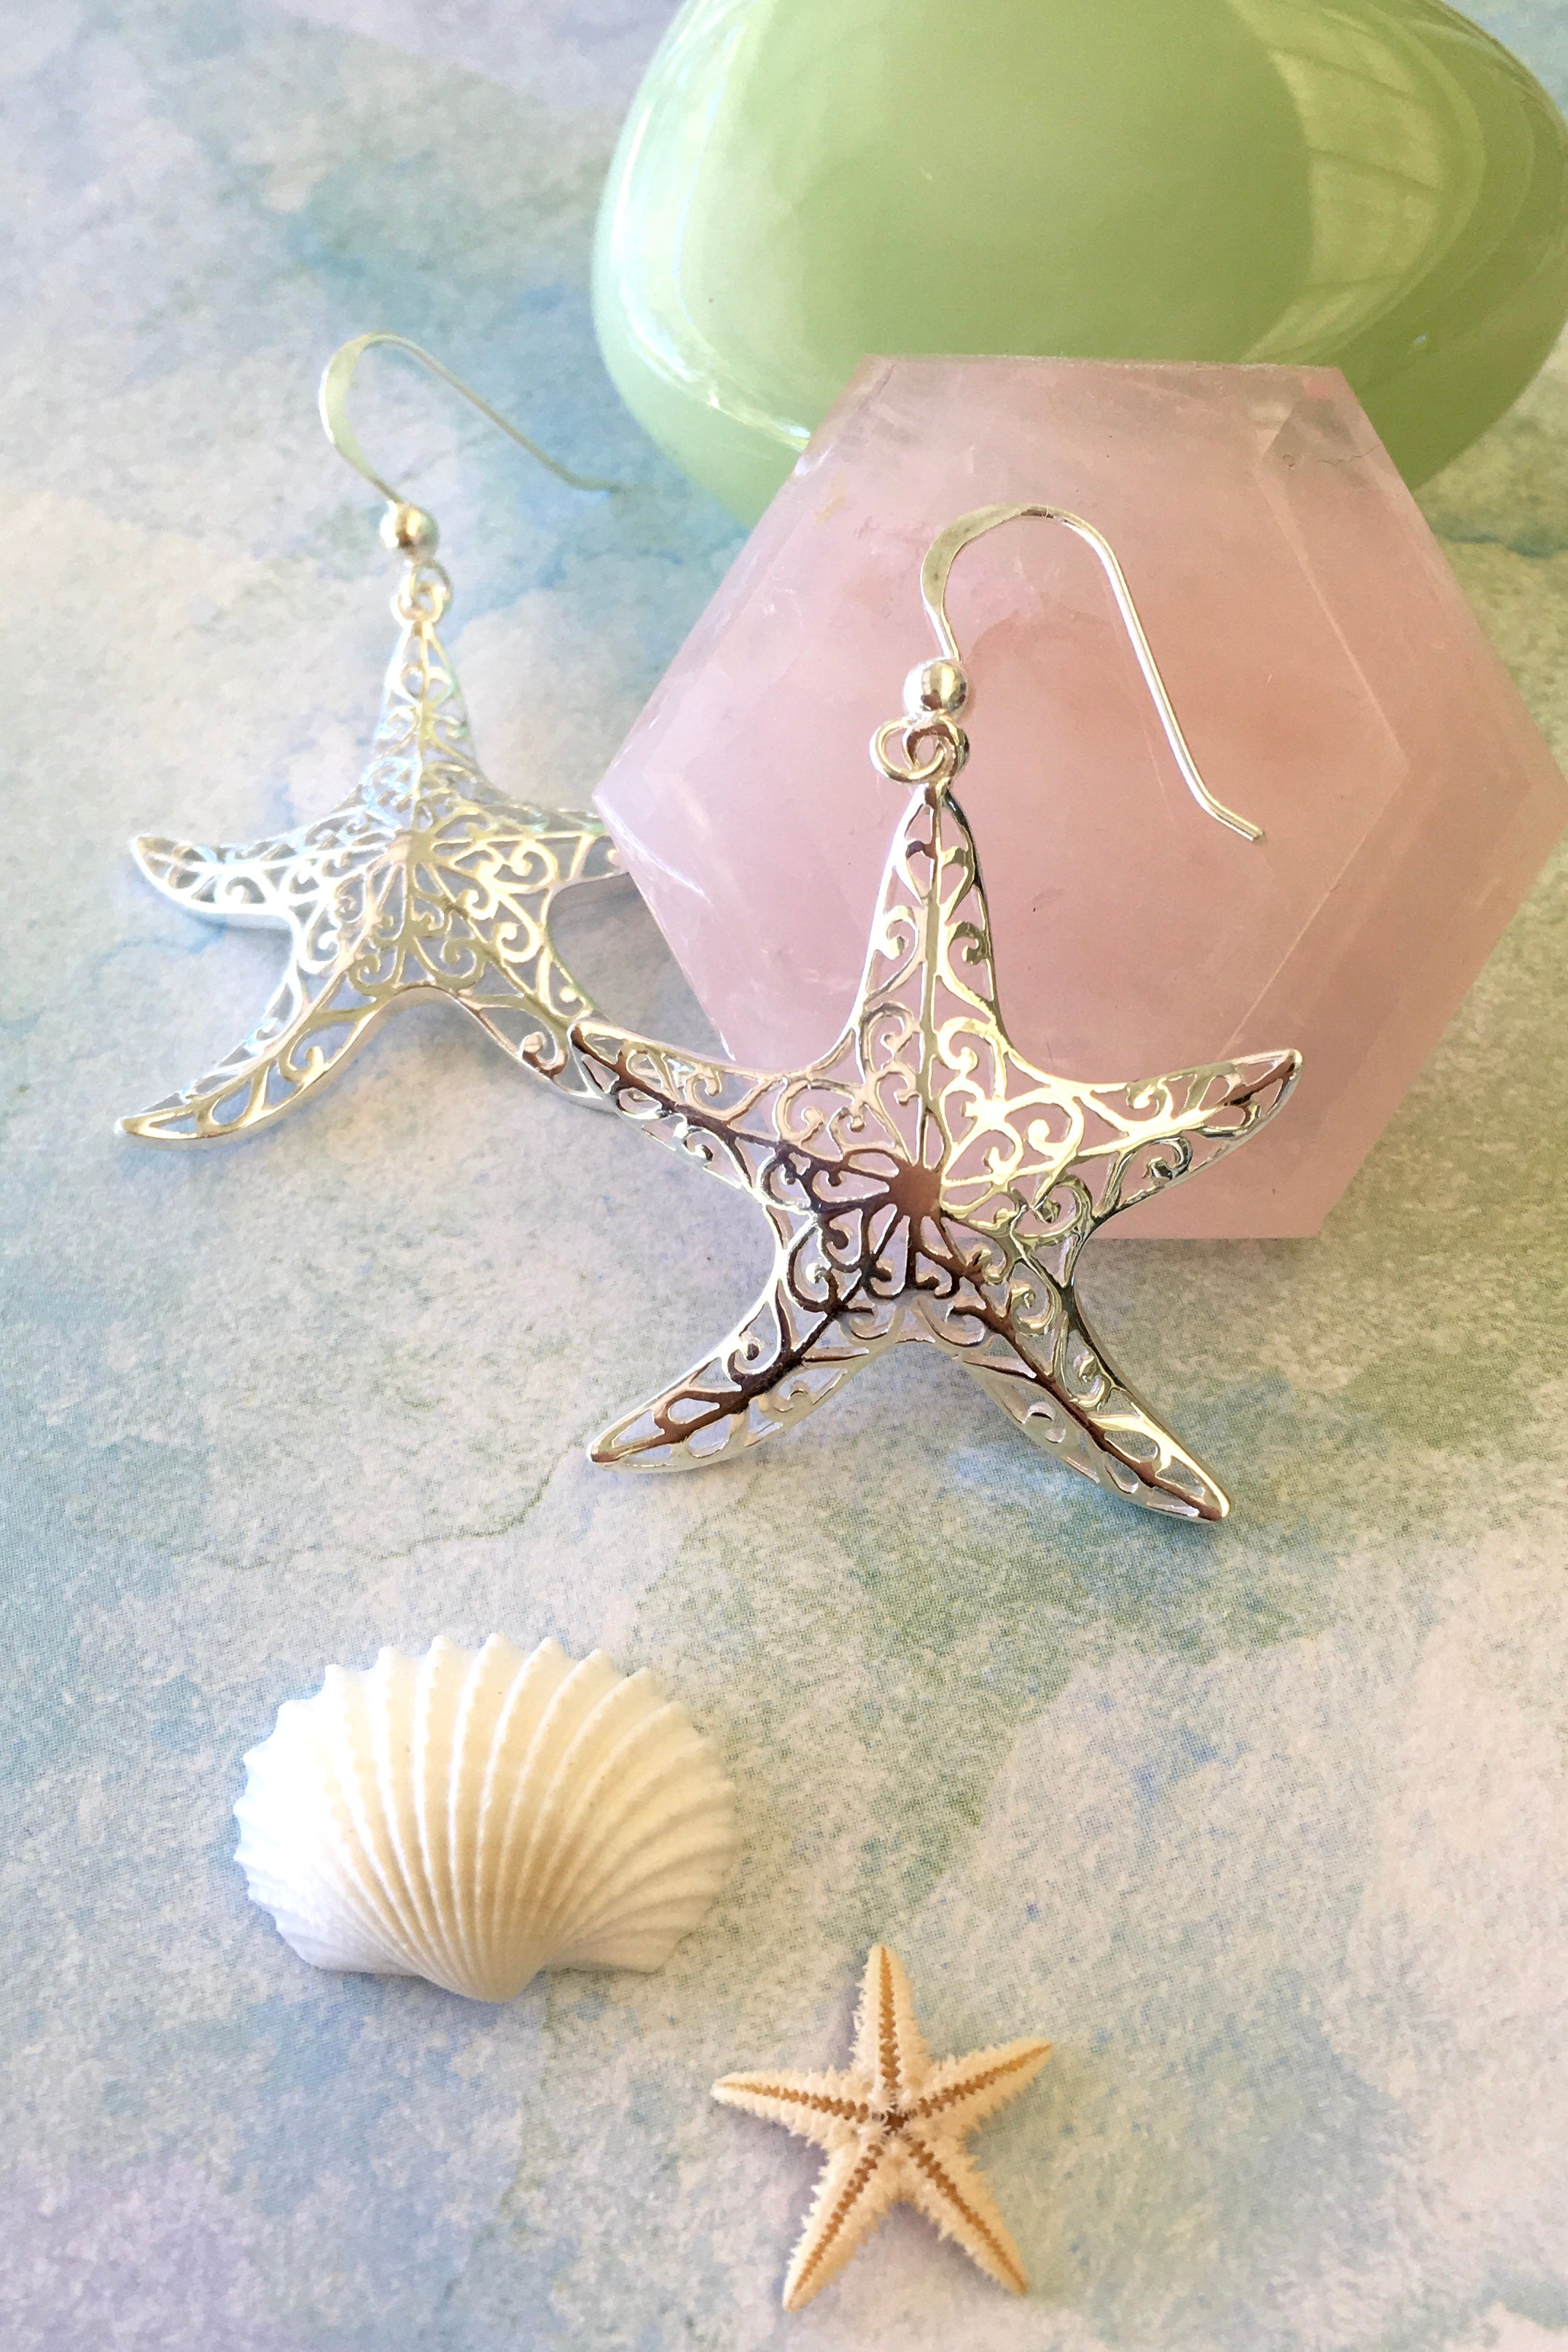 Earrings Cay Star Fish in 925 Silver, earrings in the shape of a silver starfish